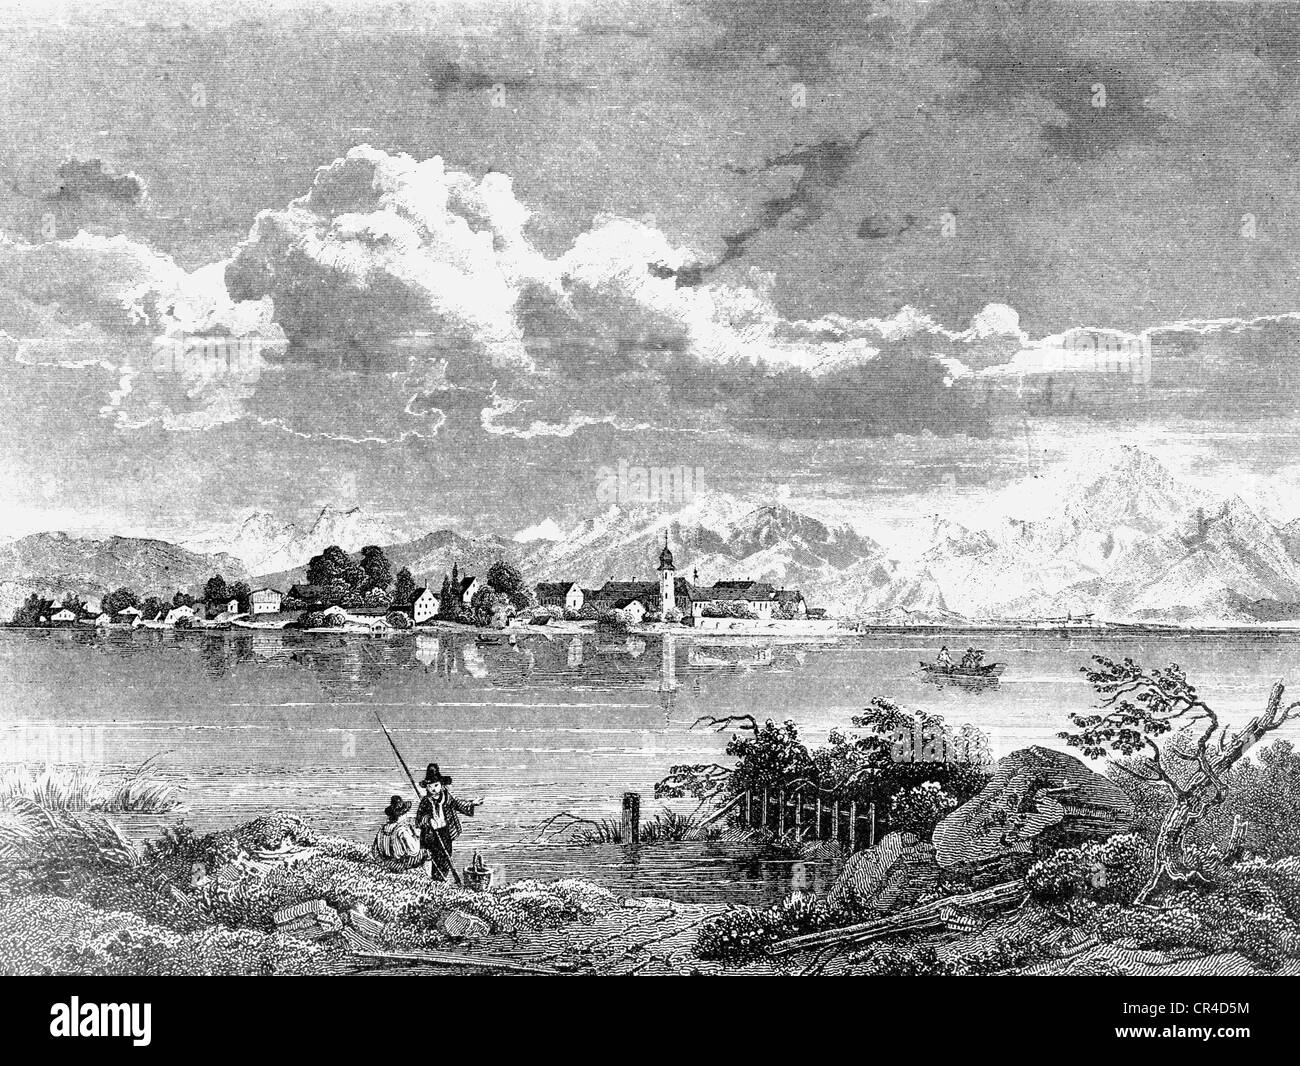 Frauenchiemsee island in Lake Chiemsee, in front of the Chiemgau mountains, about 1830, drawn by W. Scheuchzer Stock Photo